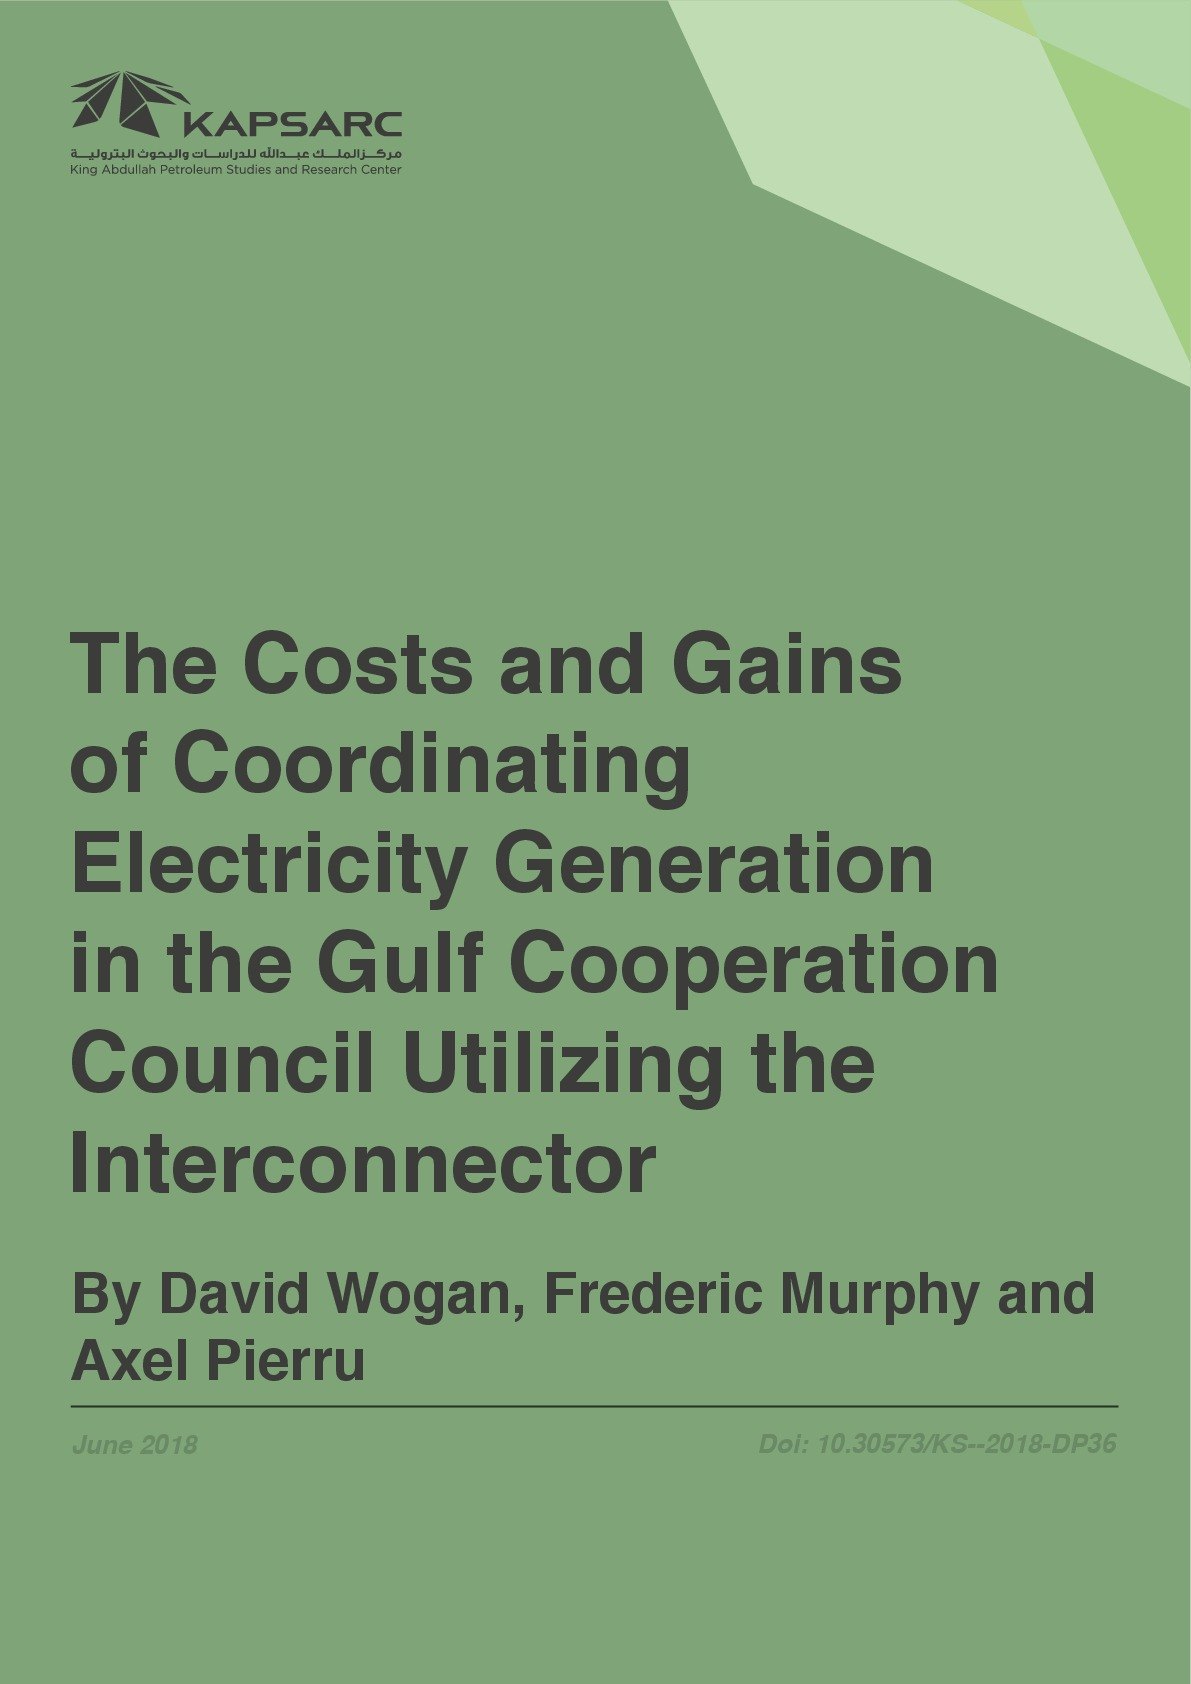 The Costs and Gains of Coordinating Electricity Generation in the Gulf Cooperation Council Utilizing the Interconnector